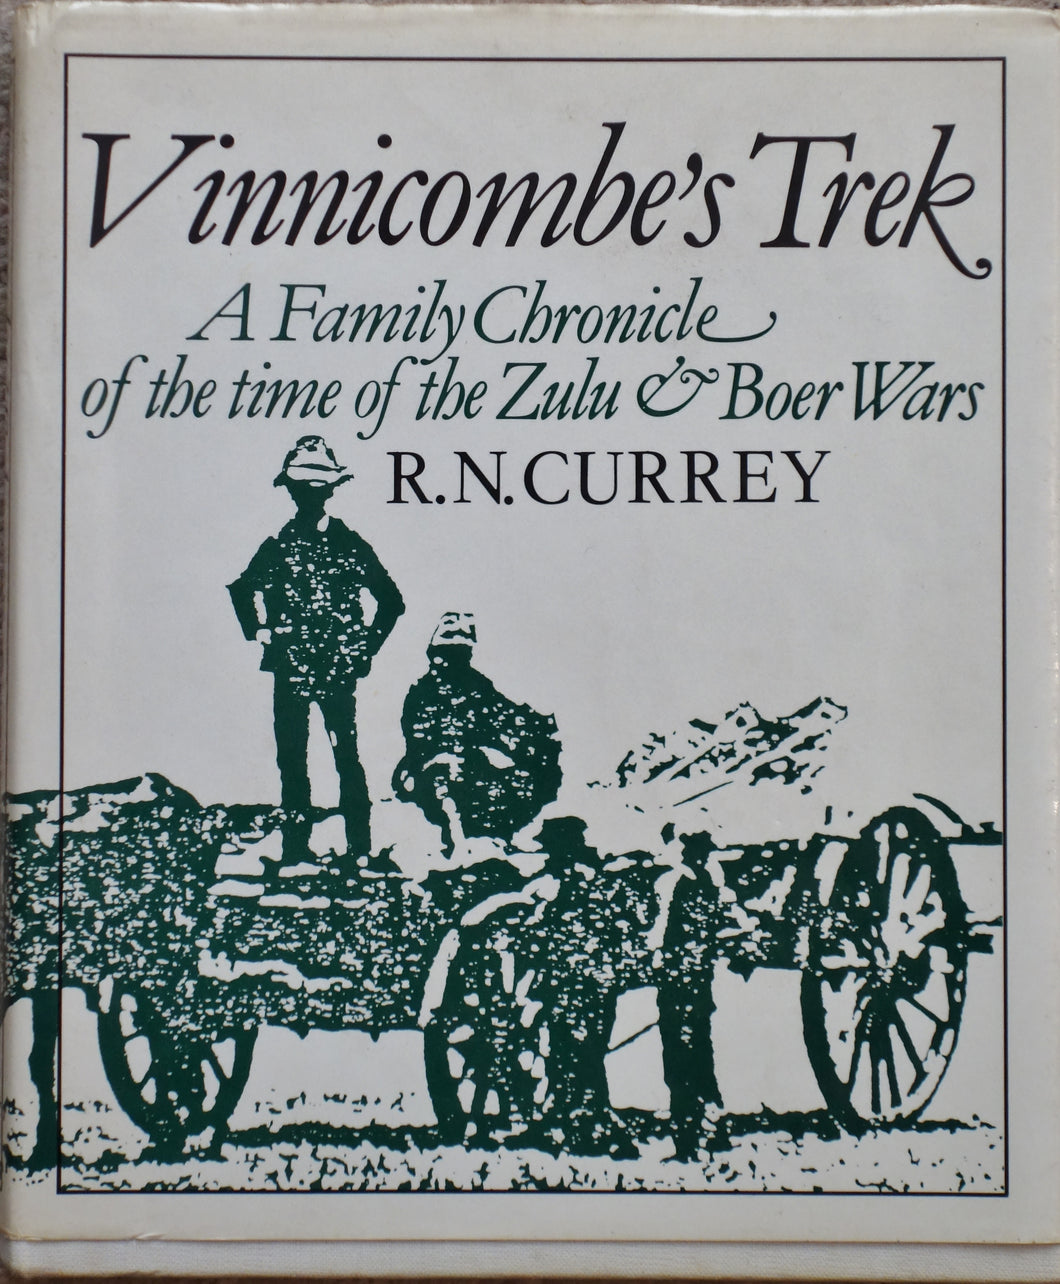 VINNICOMBE'S TREK: A Family Chronicle of the Time of the Zulu and Boer Wars by R.N. Currey